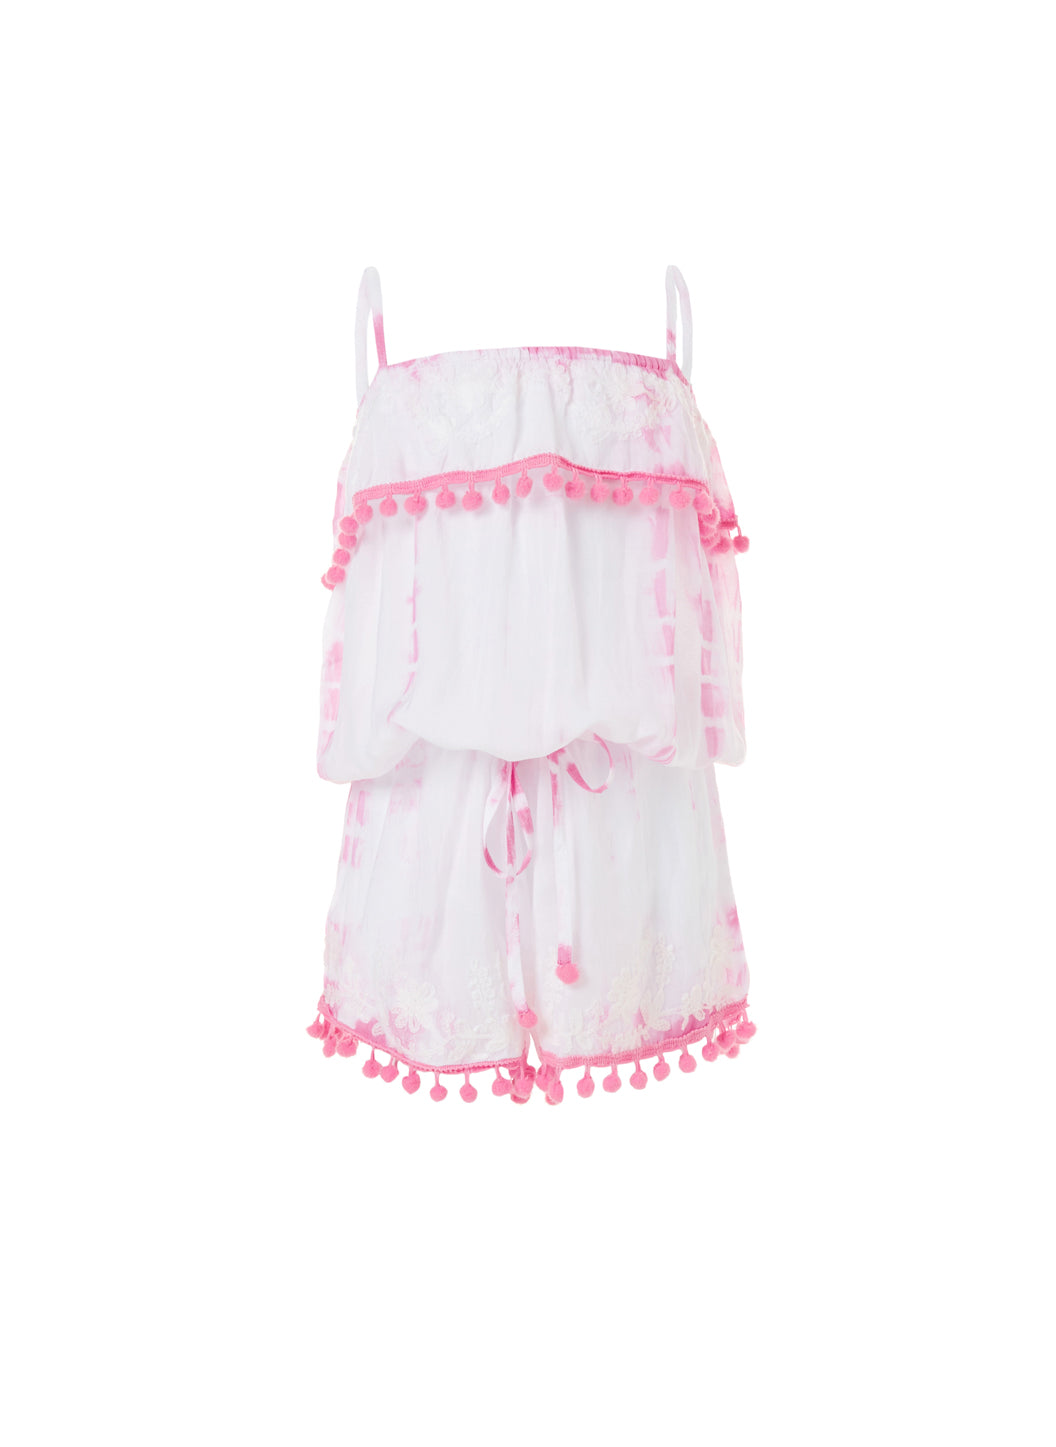 Baby Eisha Pale Pink Tie Dye Playsuit - Melissa Odabash Kids Beach Dresses